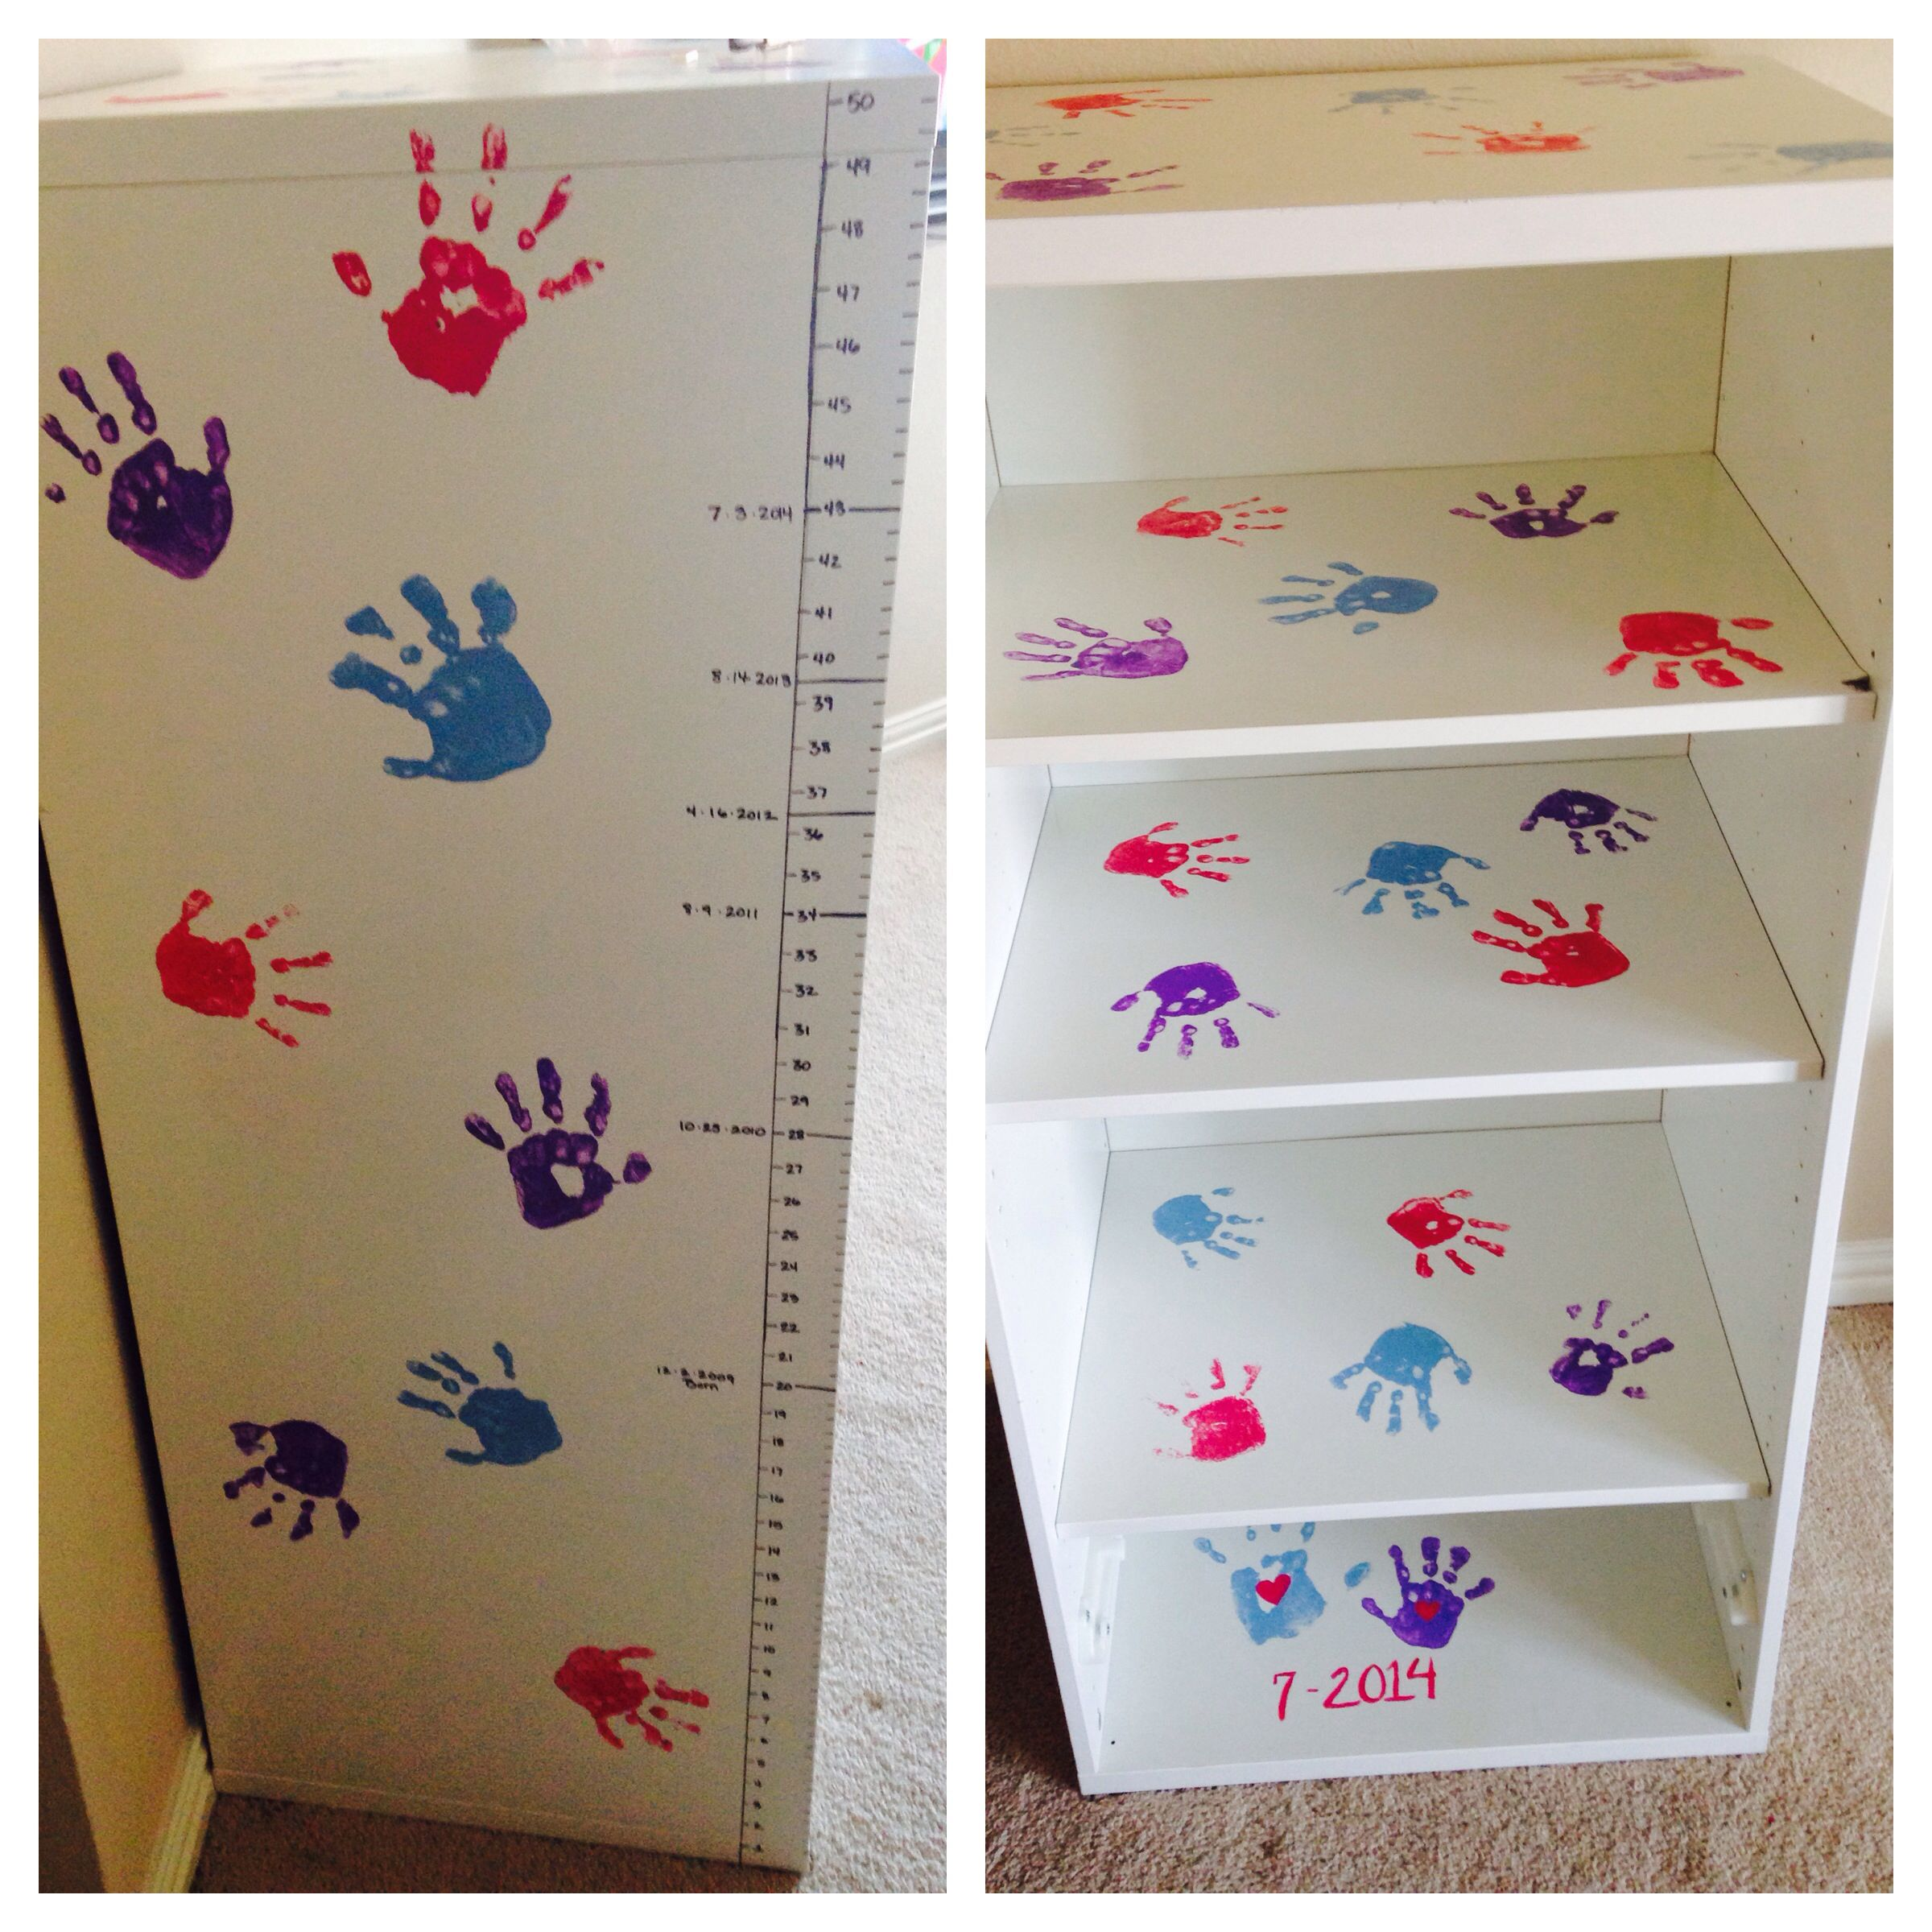 IKEA bookshelf makeover! Painted my daughters hands and did hand prints all over shelf. Put one of mine and her hand on inside bottom with little hearts in center of each. Drew in a measuring ruler and added height for each year. Will paint inside ruler varying colors for each measurement taken. Sprayed over everything with a glider coat to seal it in except area on ruler where she will continue to grow. :) Not bad for a playroom bookshelf!